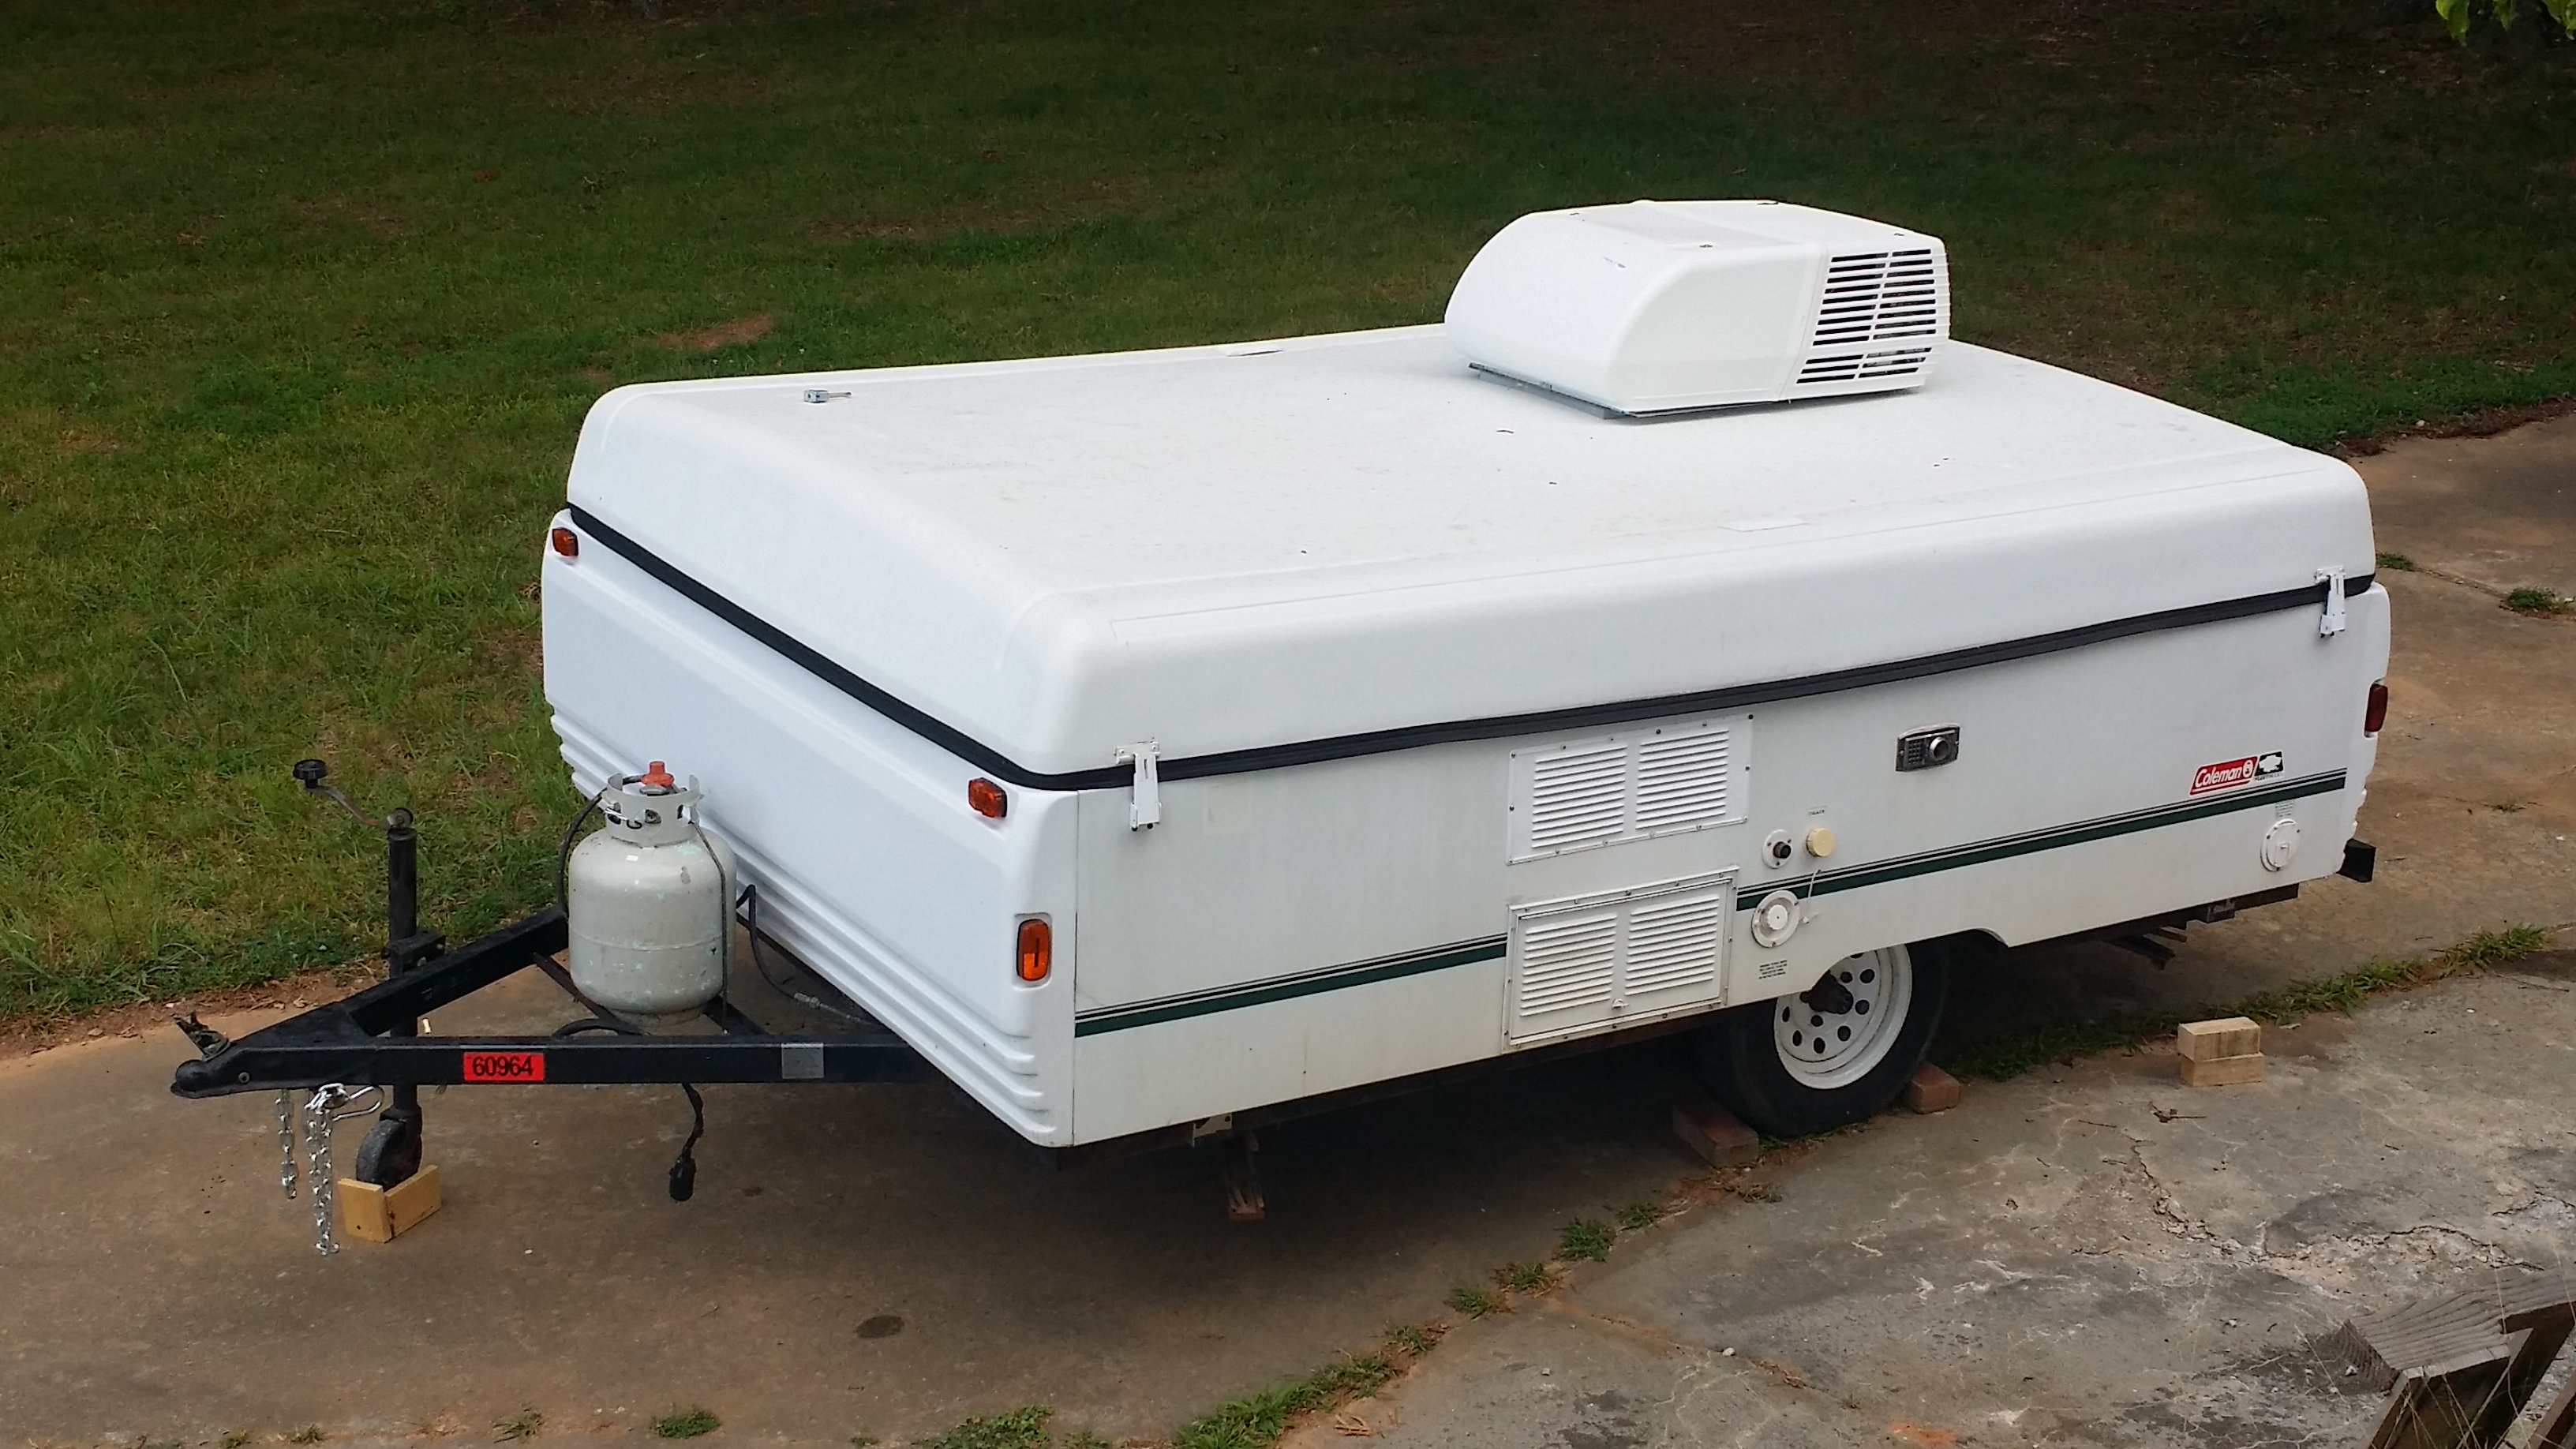 Top 25 Advance Nc Rv Rentals And Motorhome Outdoorsy 1997 Coleman Seapine Pop Up Camper Wiring Diagram